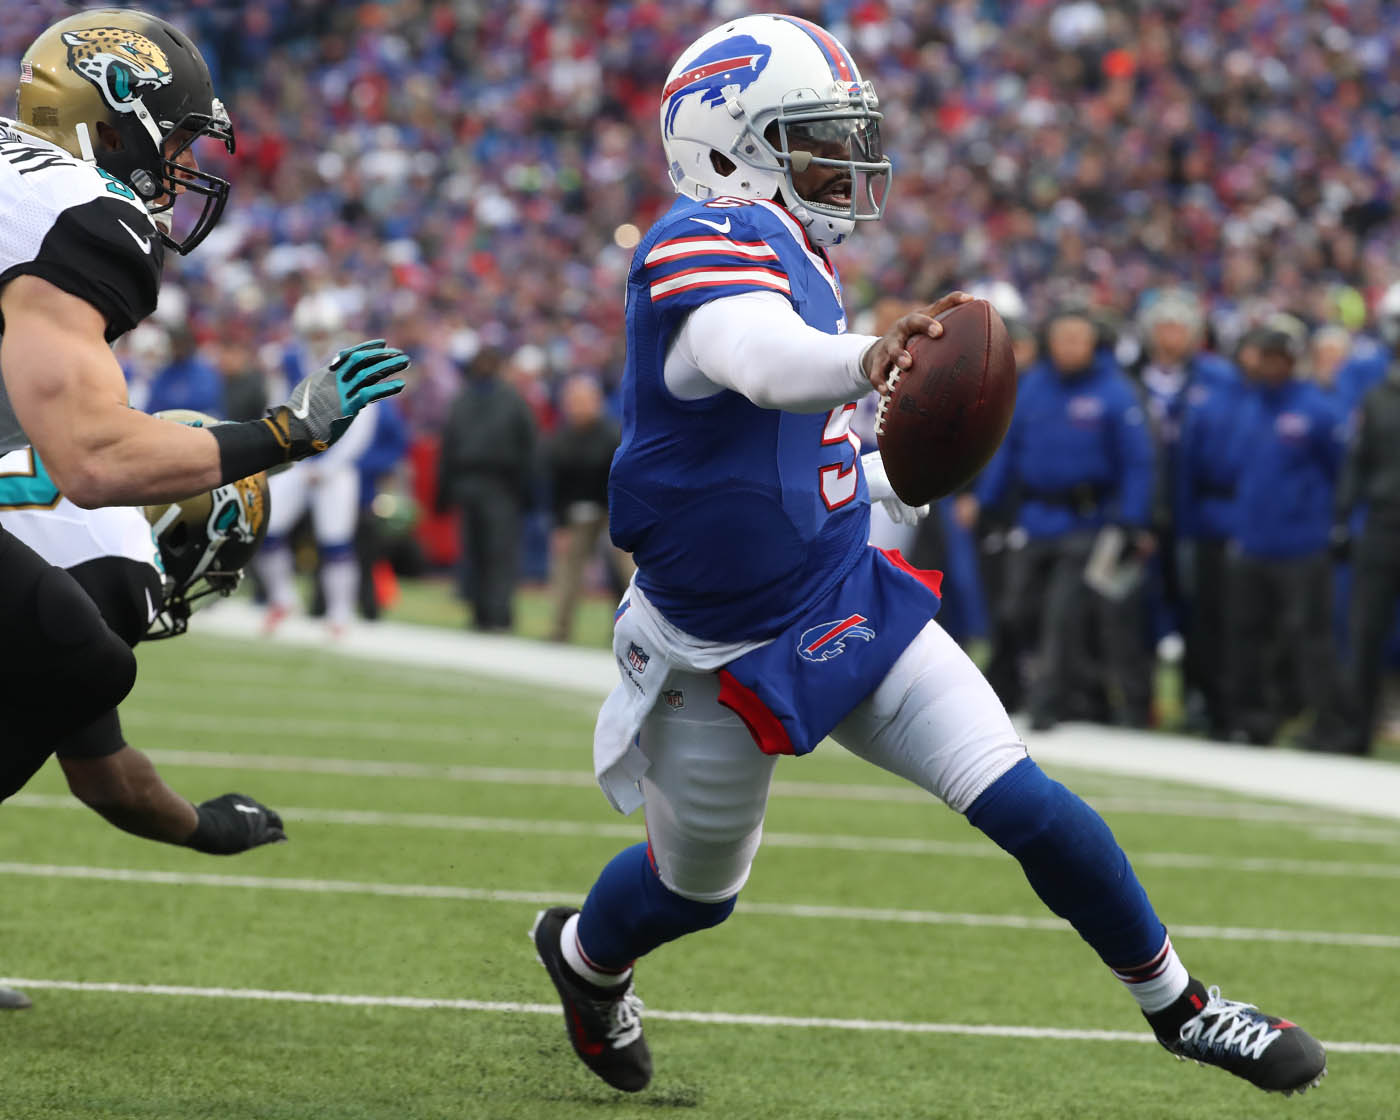 Buffalo Bills quarterback Tyrod Taylor (5) beats Jacksonville Jaguars middle linebacker Paul Posluszny (51) for a touchdown in the third quarter at New Era Field Orchard Park N.Y. on Sunday, Nov. 27, 2016. (James P. McCoy/Buffalo News)